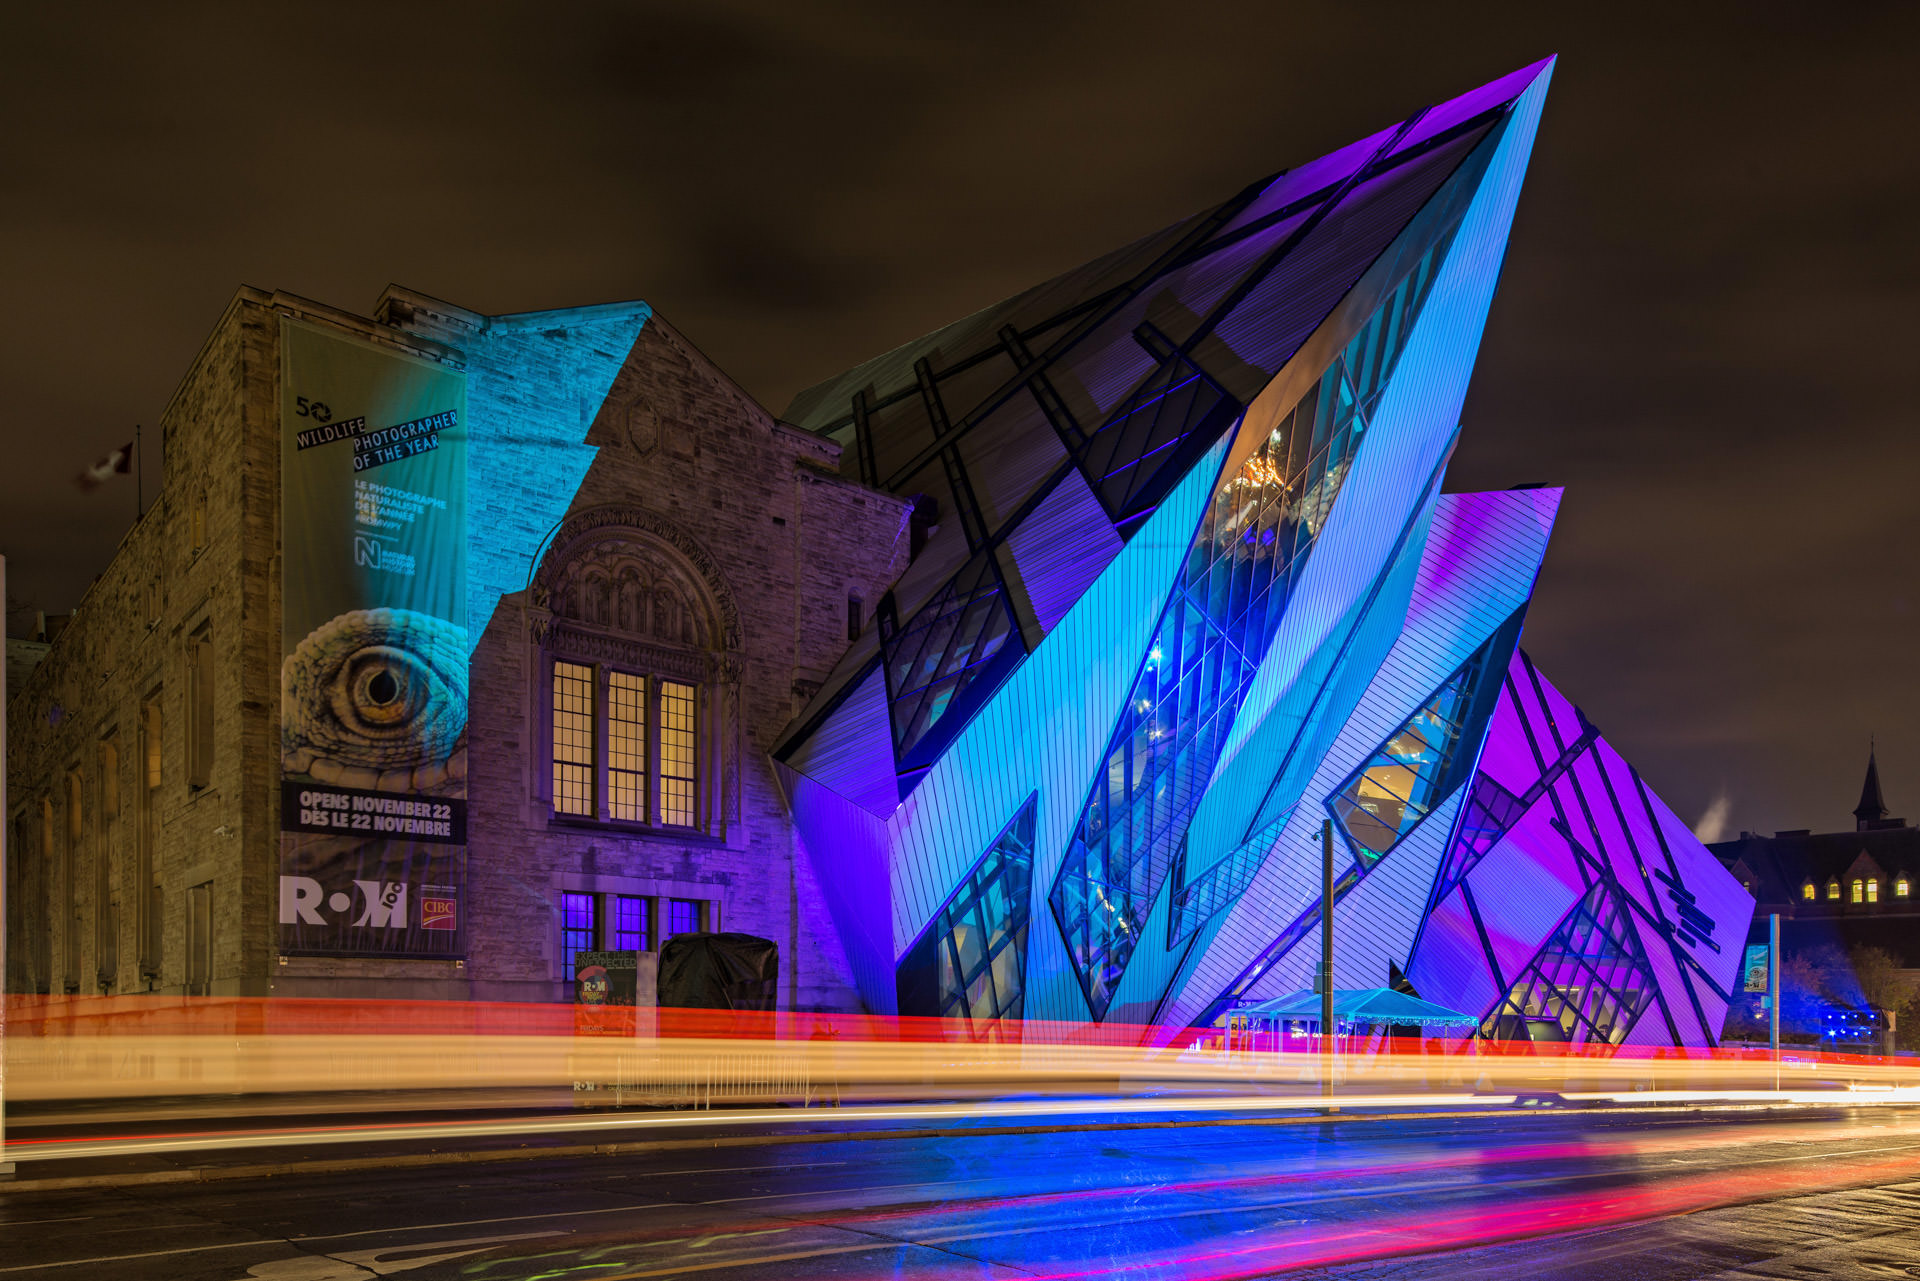 Centennial Ball Royal Ontario Museum Moment Factory